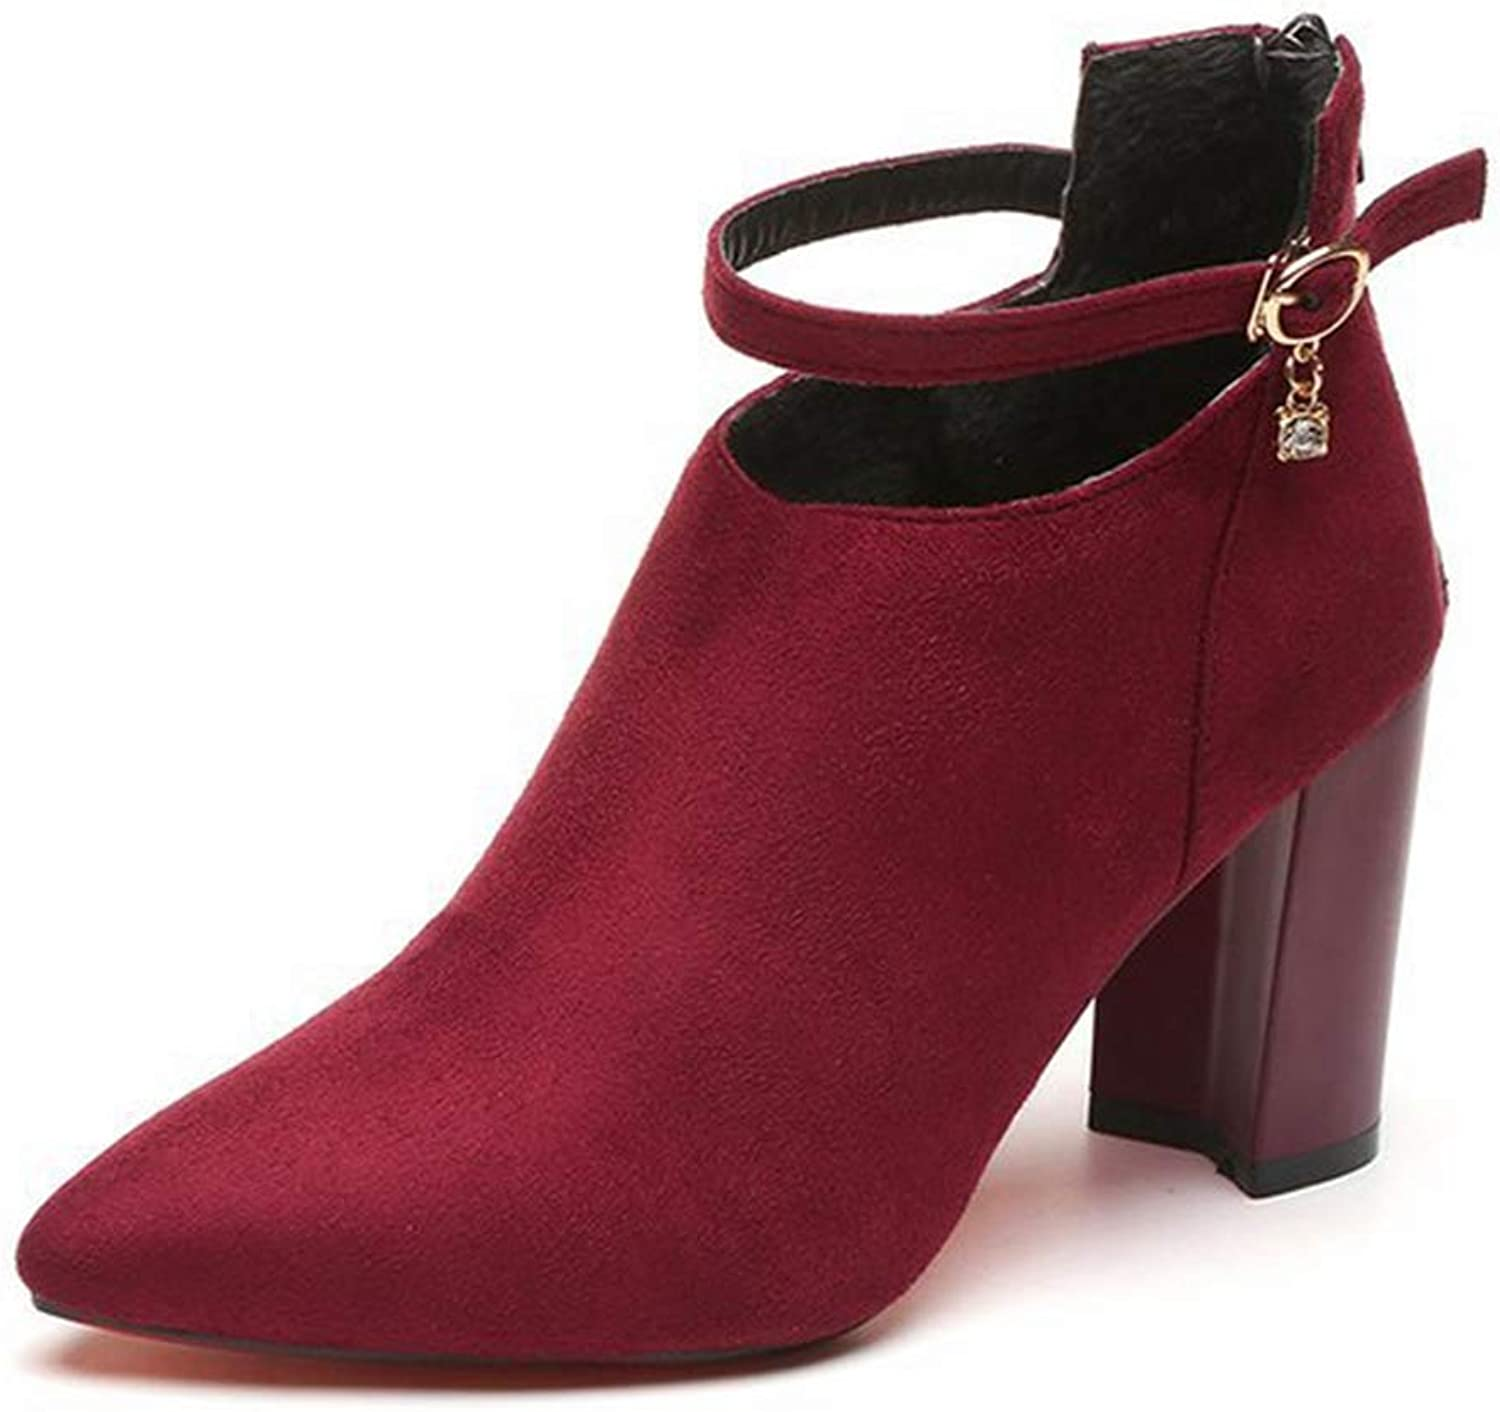 Winter Ankle Boots Women Pointed Toe High Square Heels Buckle Zipper Solid Fashion shoes for Female